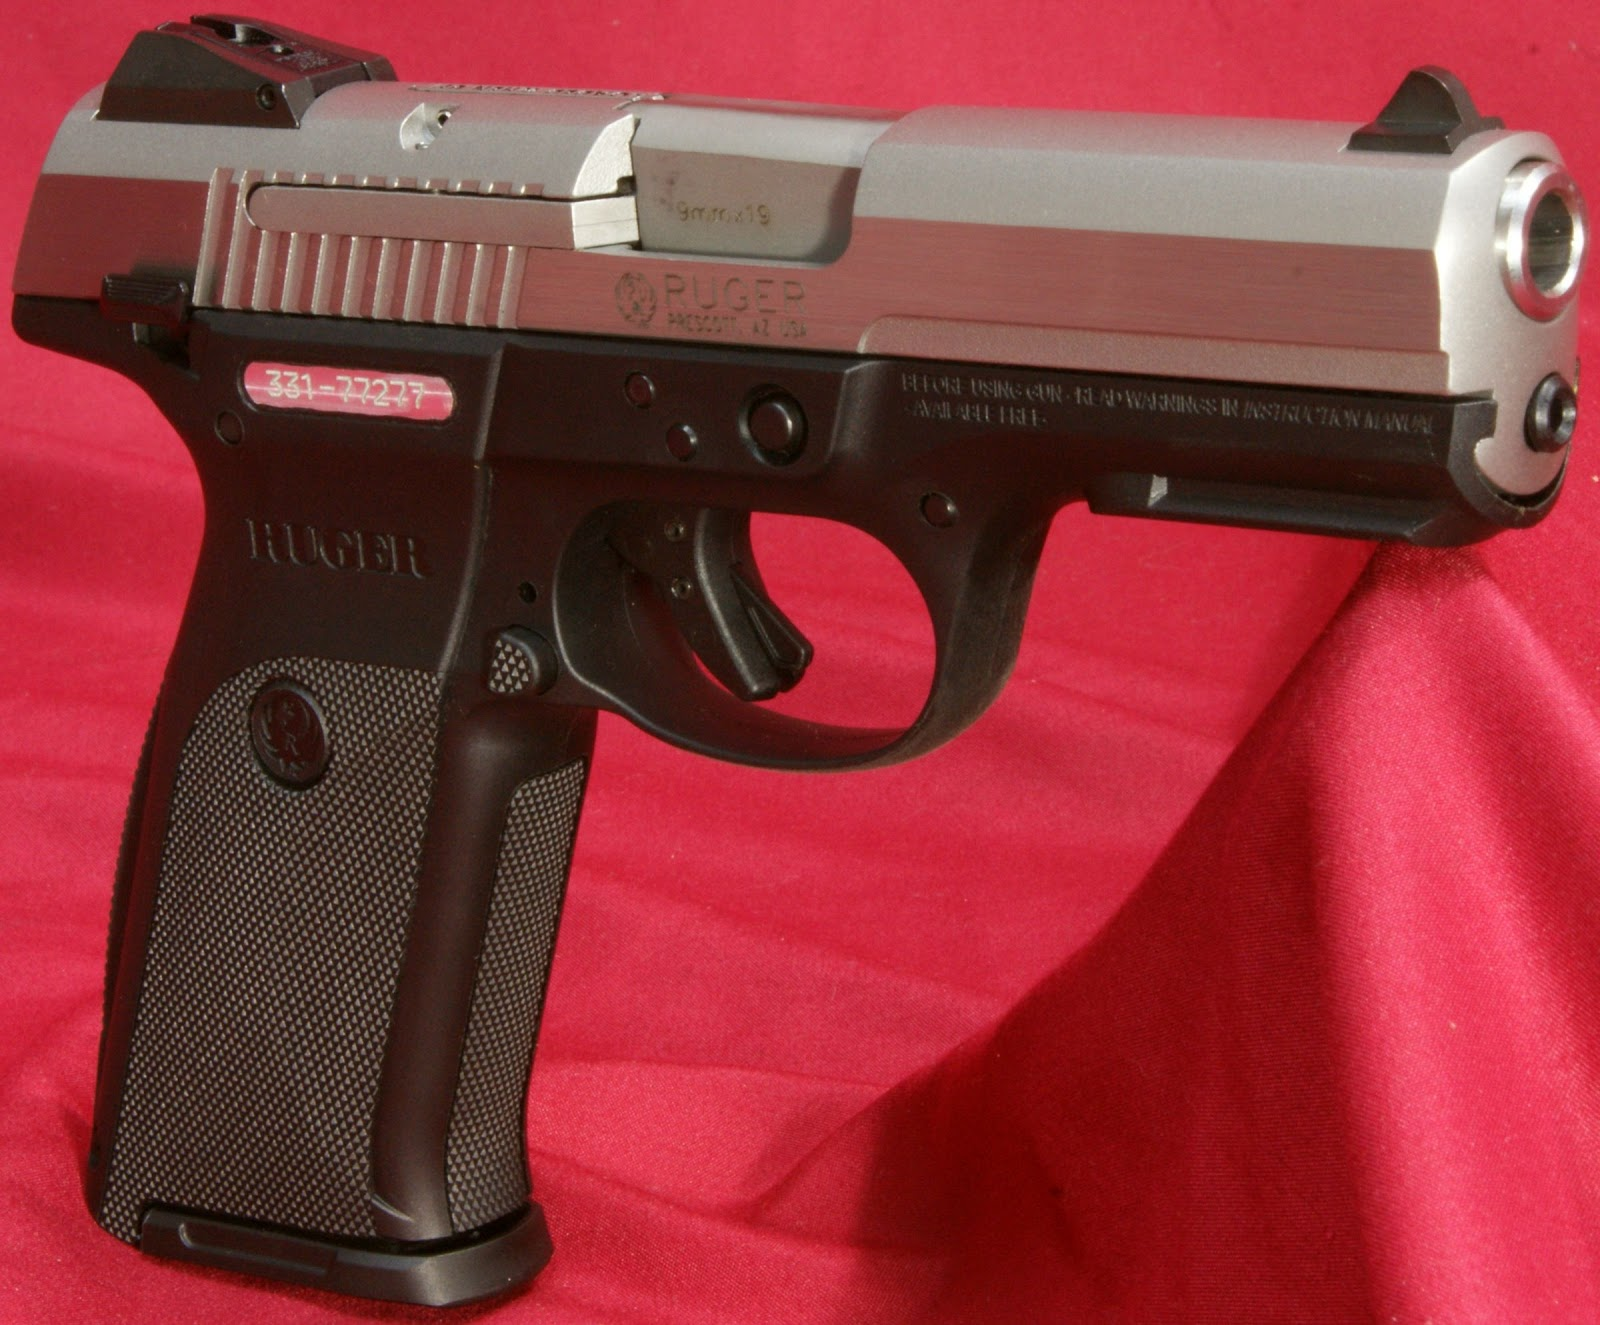 Gunsumer Reports: Ruger SR9 Pistol Review: Reader's Comments